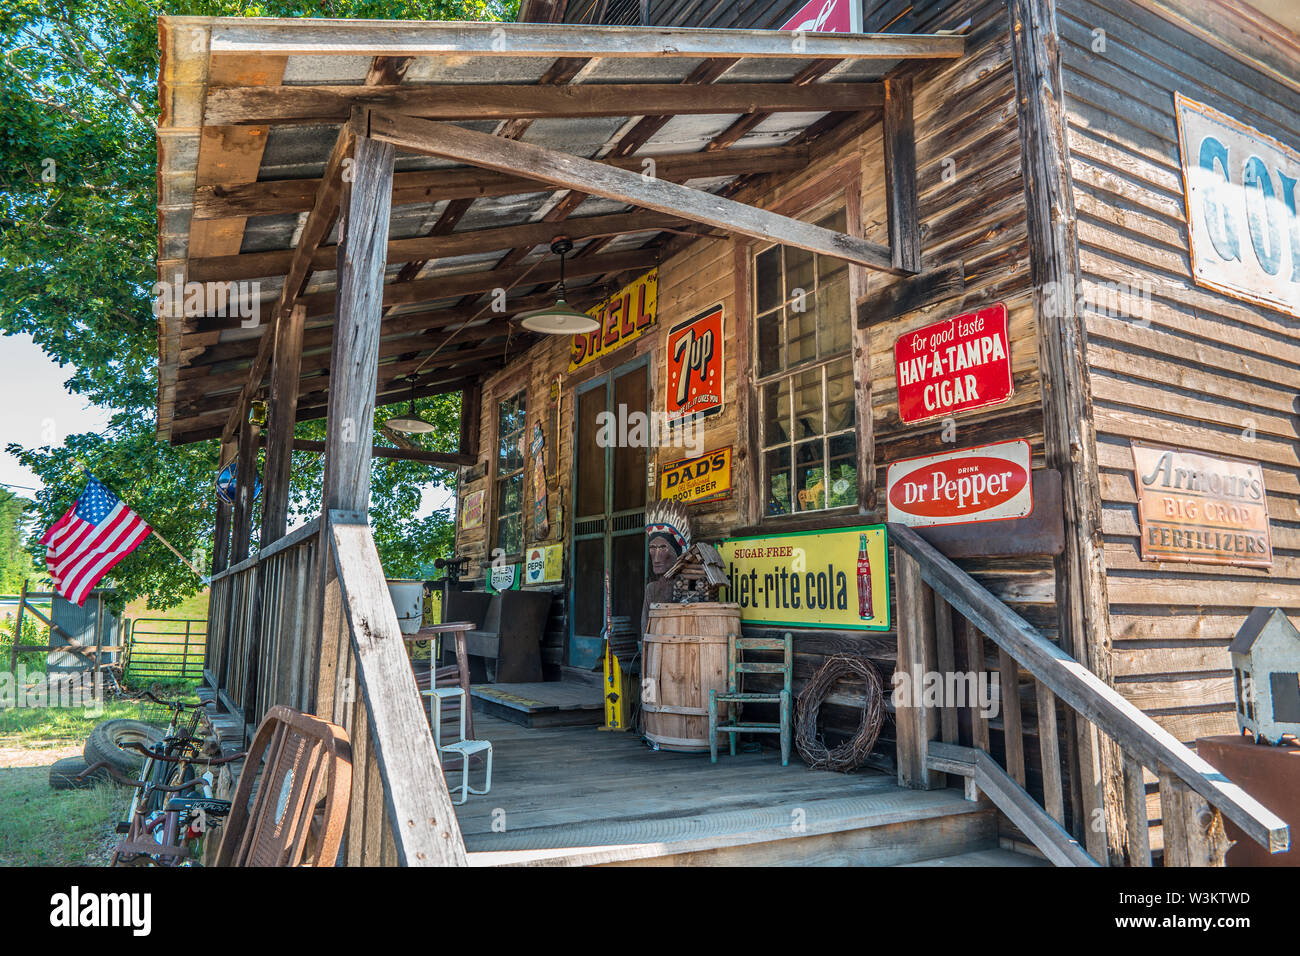 Old Country Store Stock Photos & Old Country Store Stock Images - Alamy